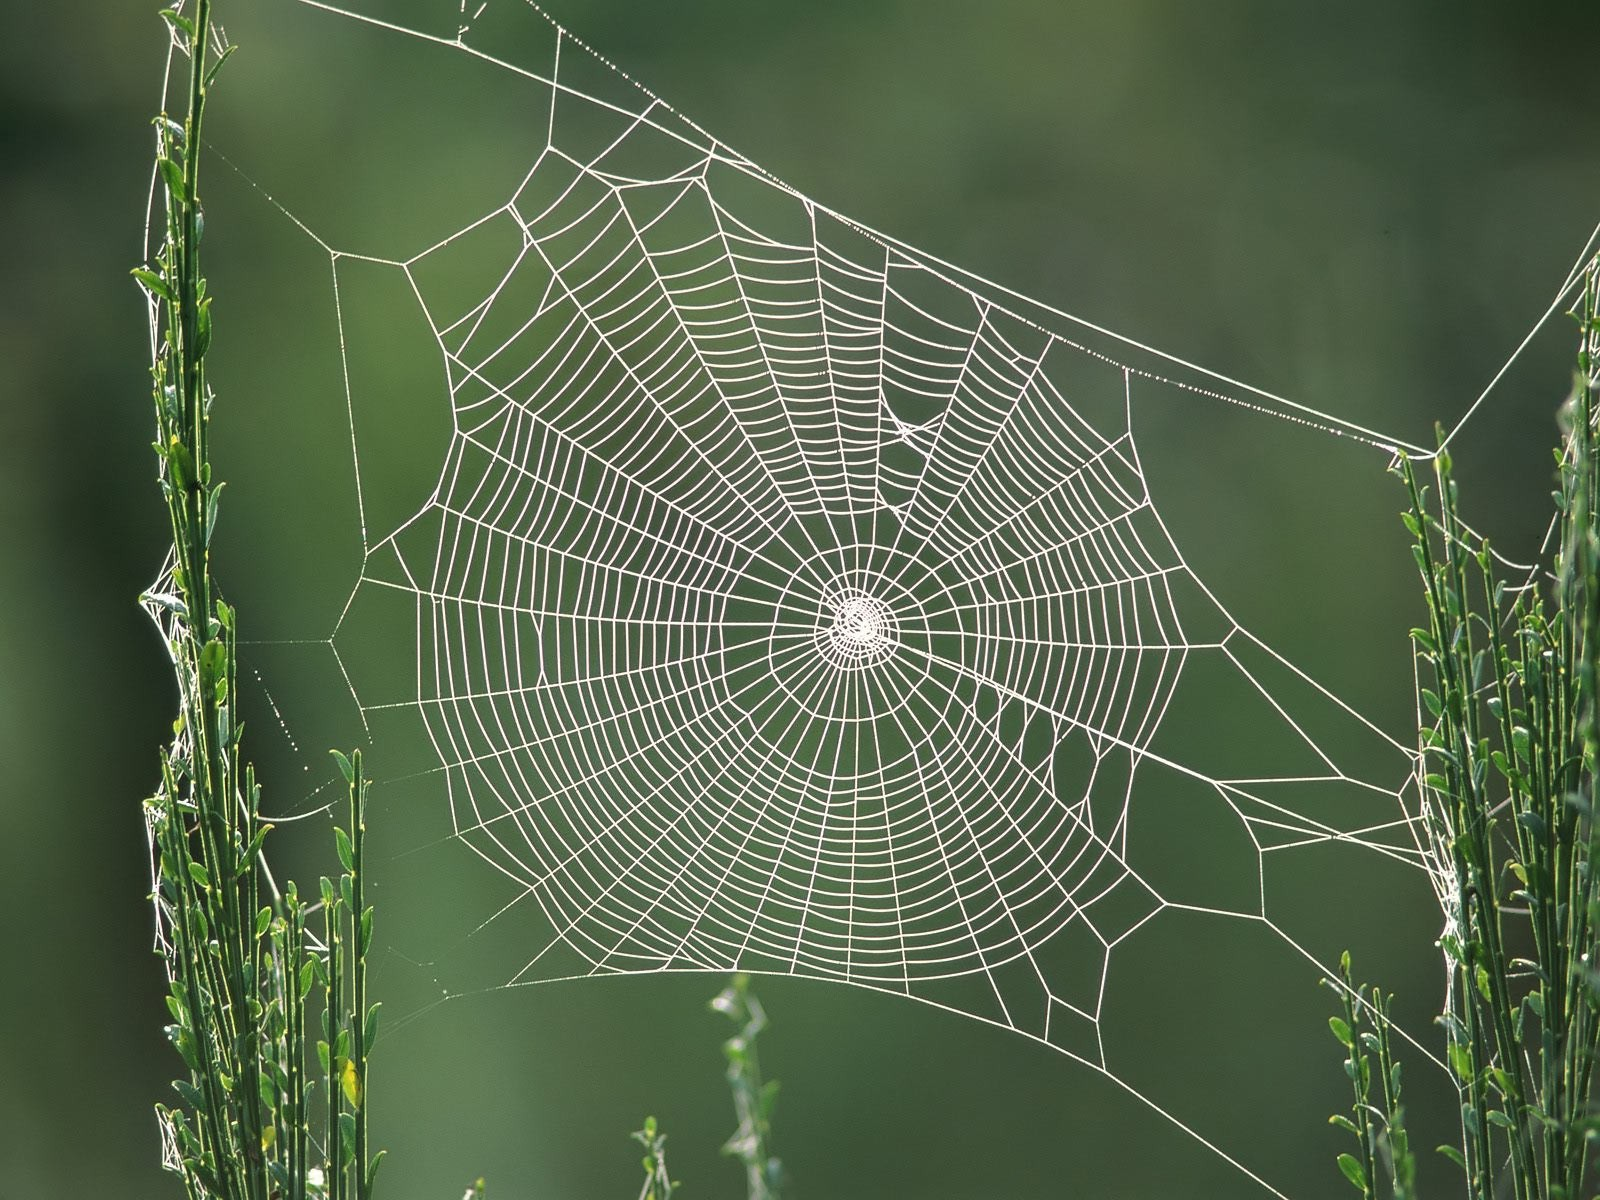 spider-web-trap-for-insects